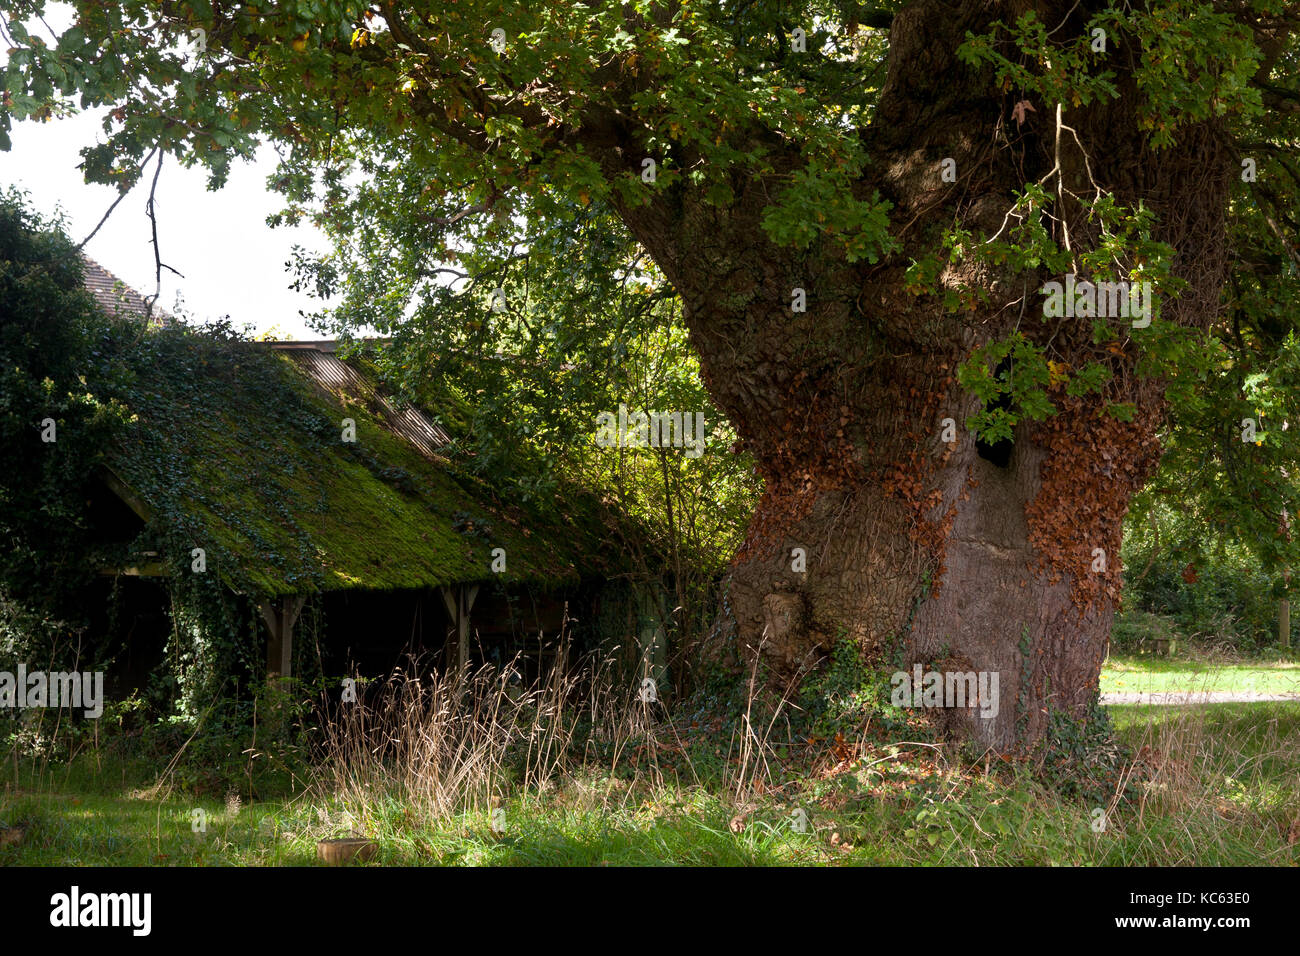 an ancient oak tree (Quercus robur) and barn located in Linchmere, nr Liphook, Surrey, England - Stock Image